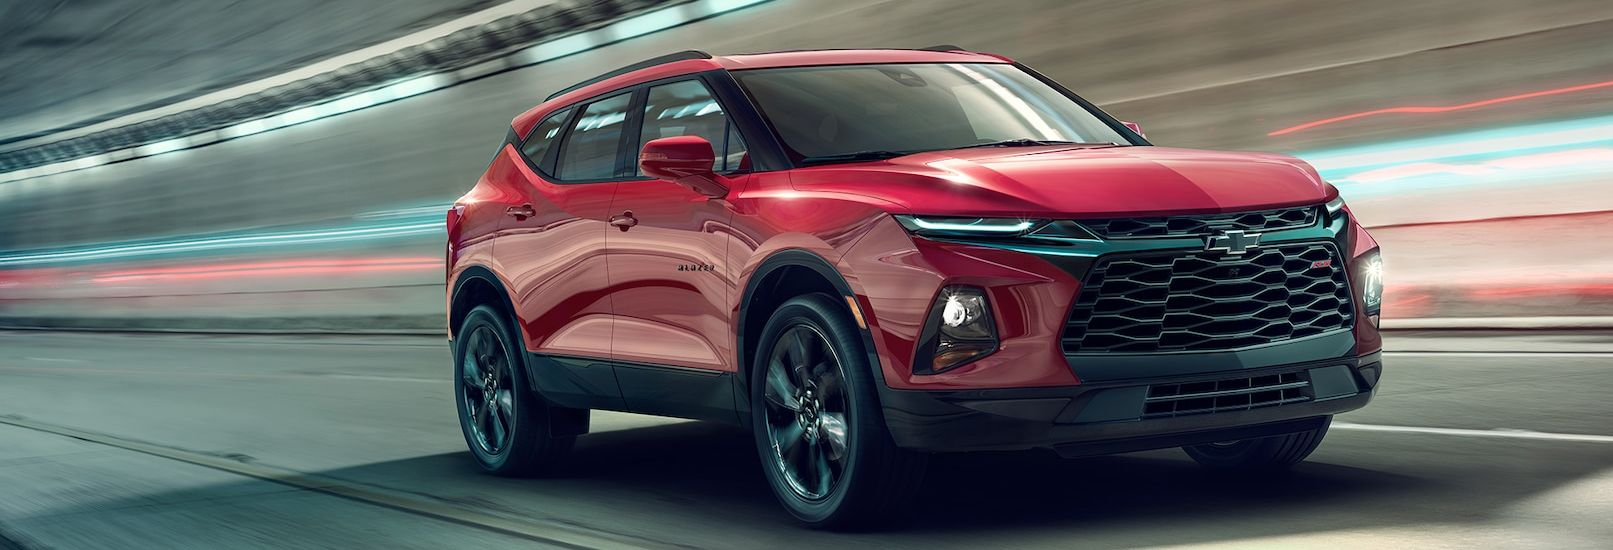 2019 Chevrolet Blazer Coming Soon near Oceanside, CA